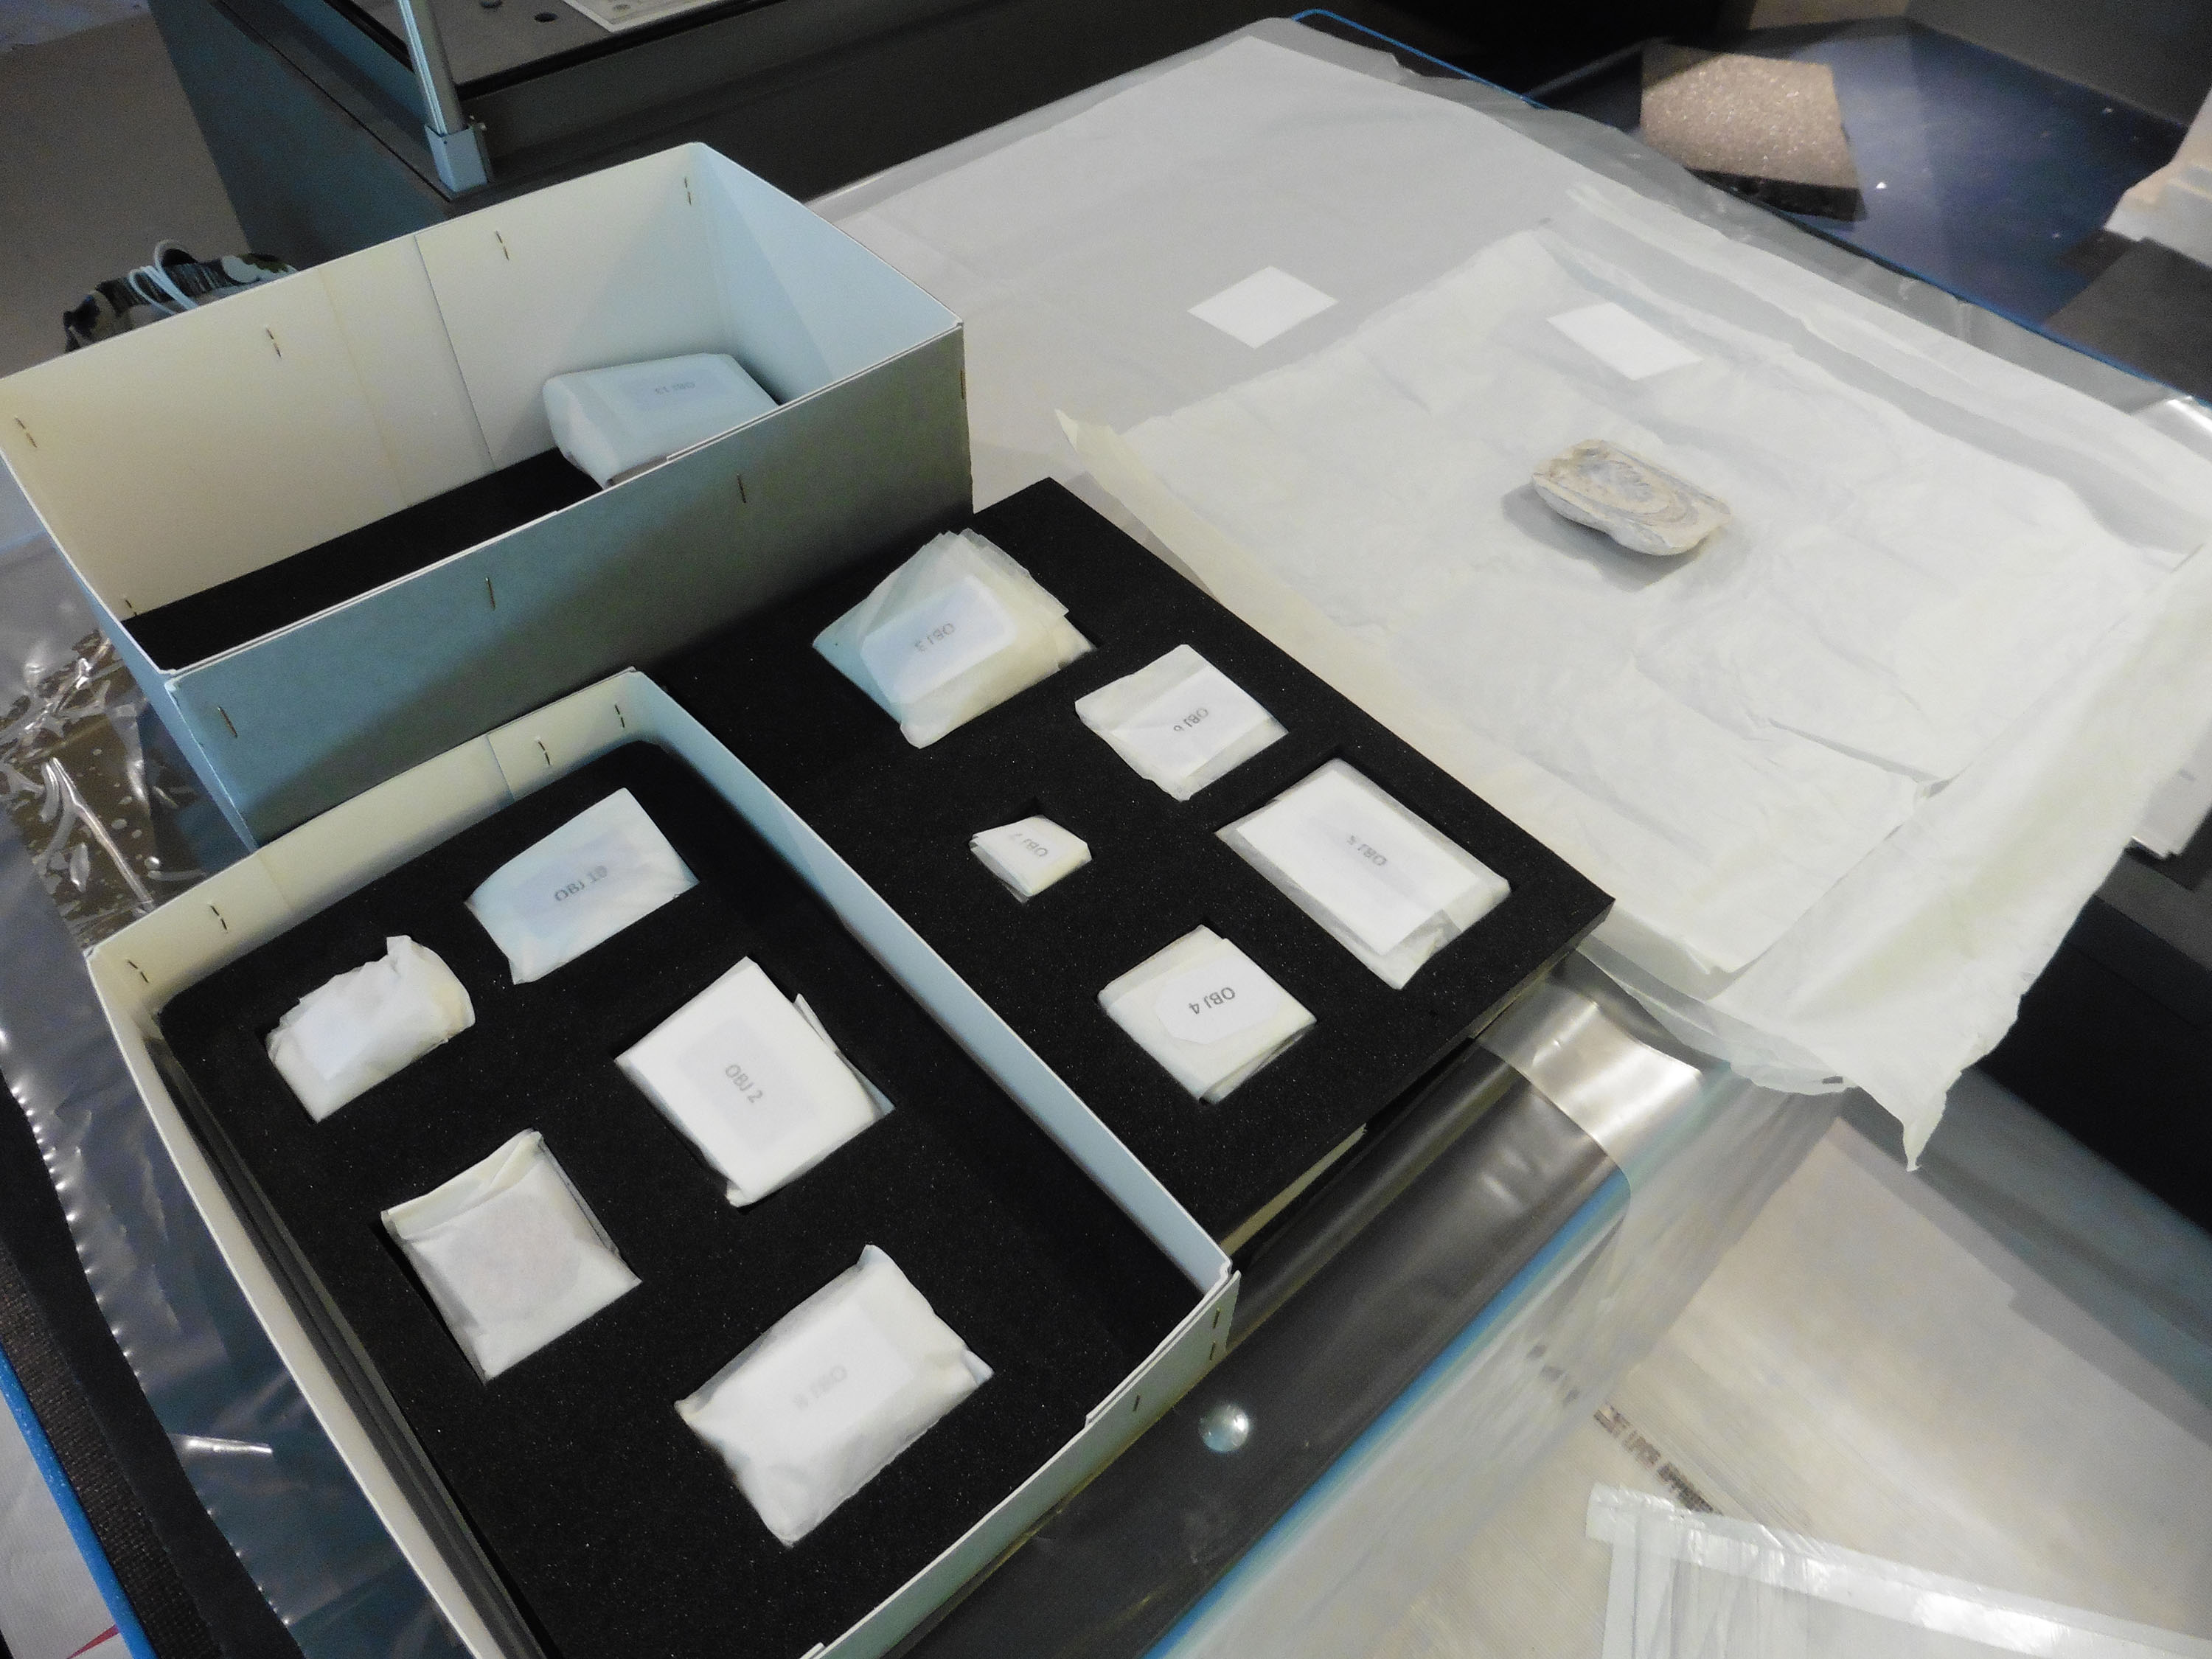 A box of objects is being unpacked on to a table at a museum. Each object is individually numbered and wrapped in white protective material.